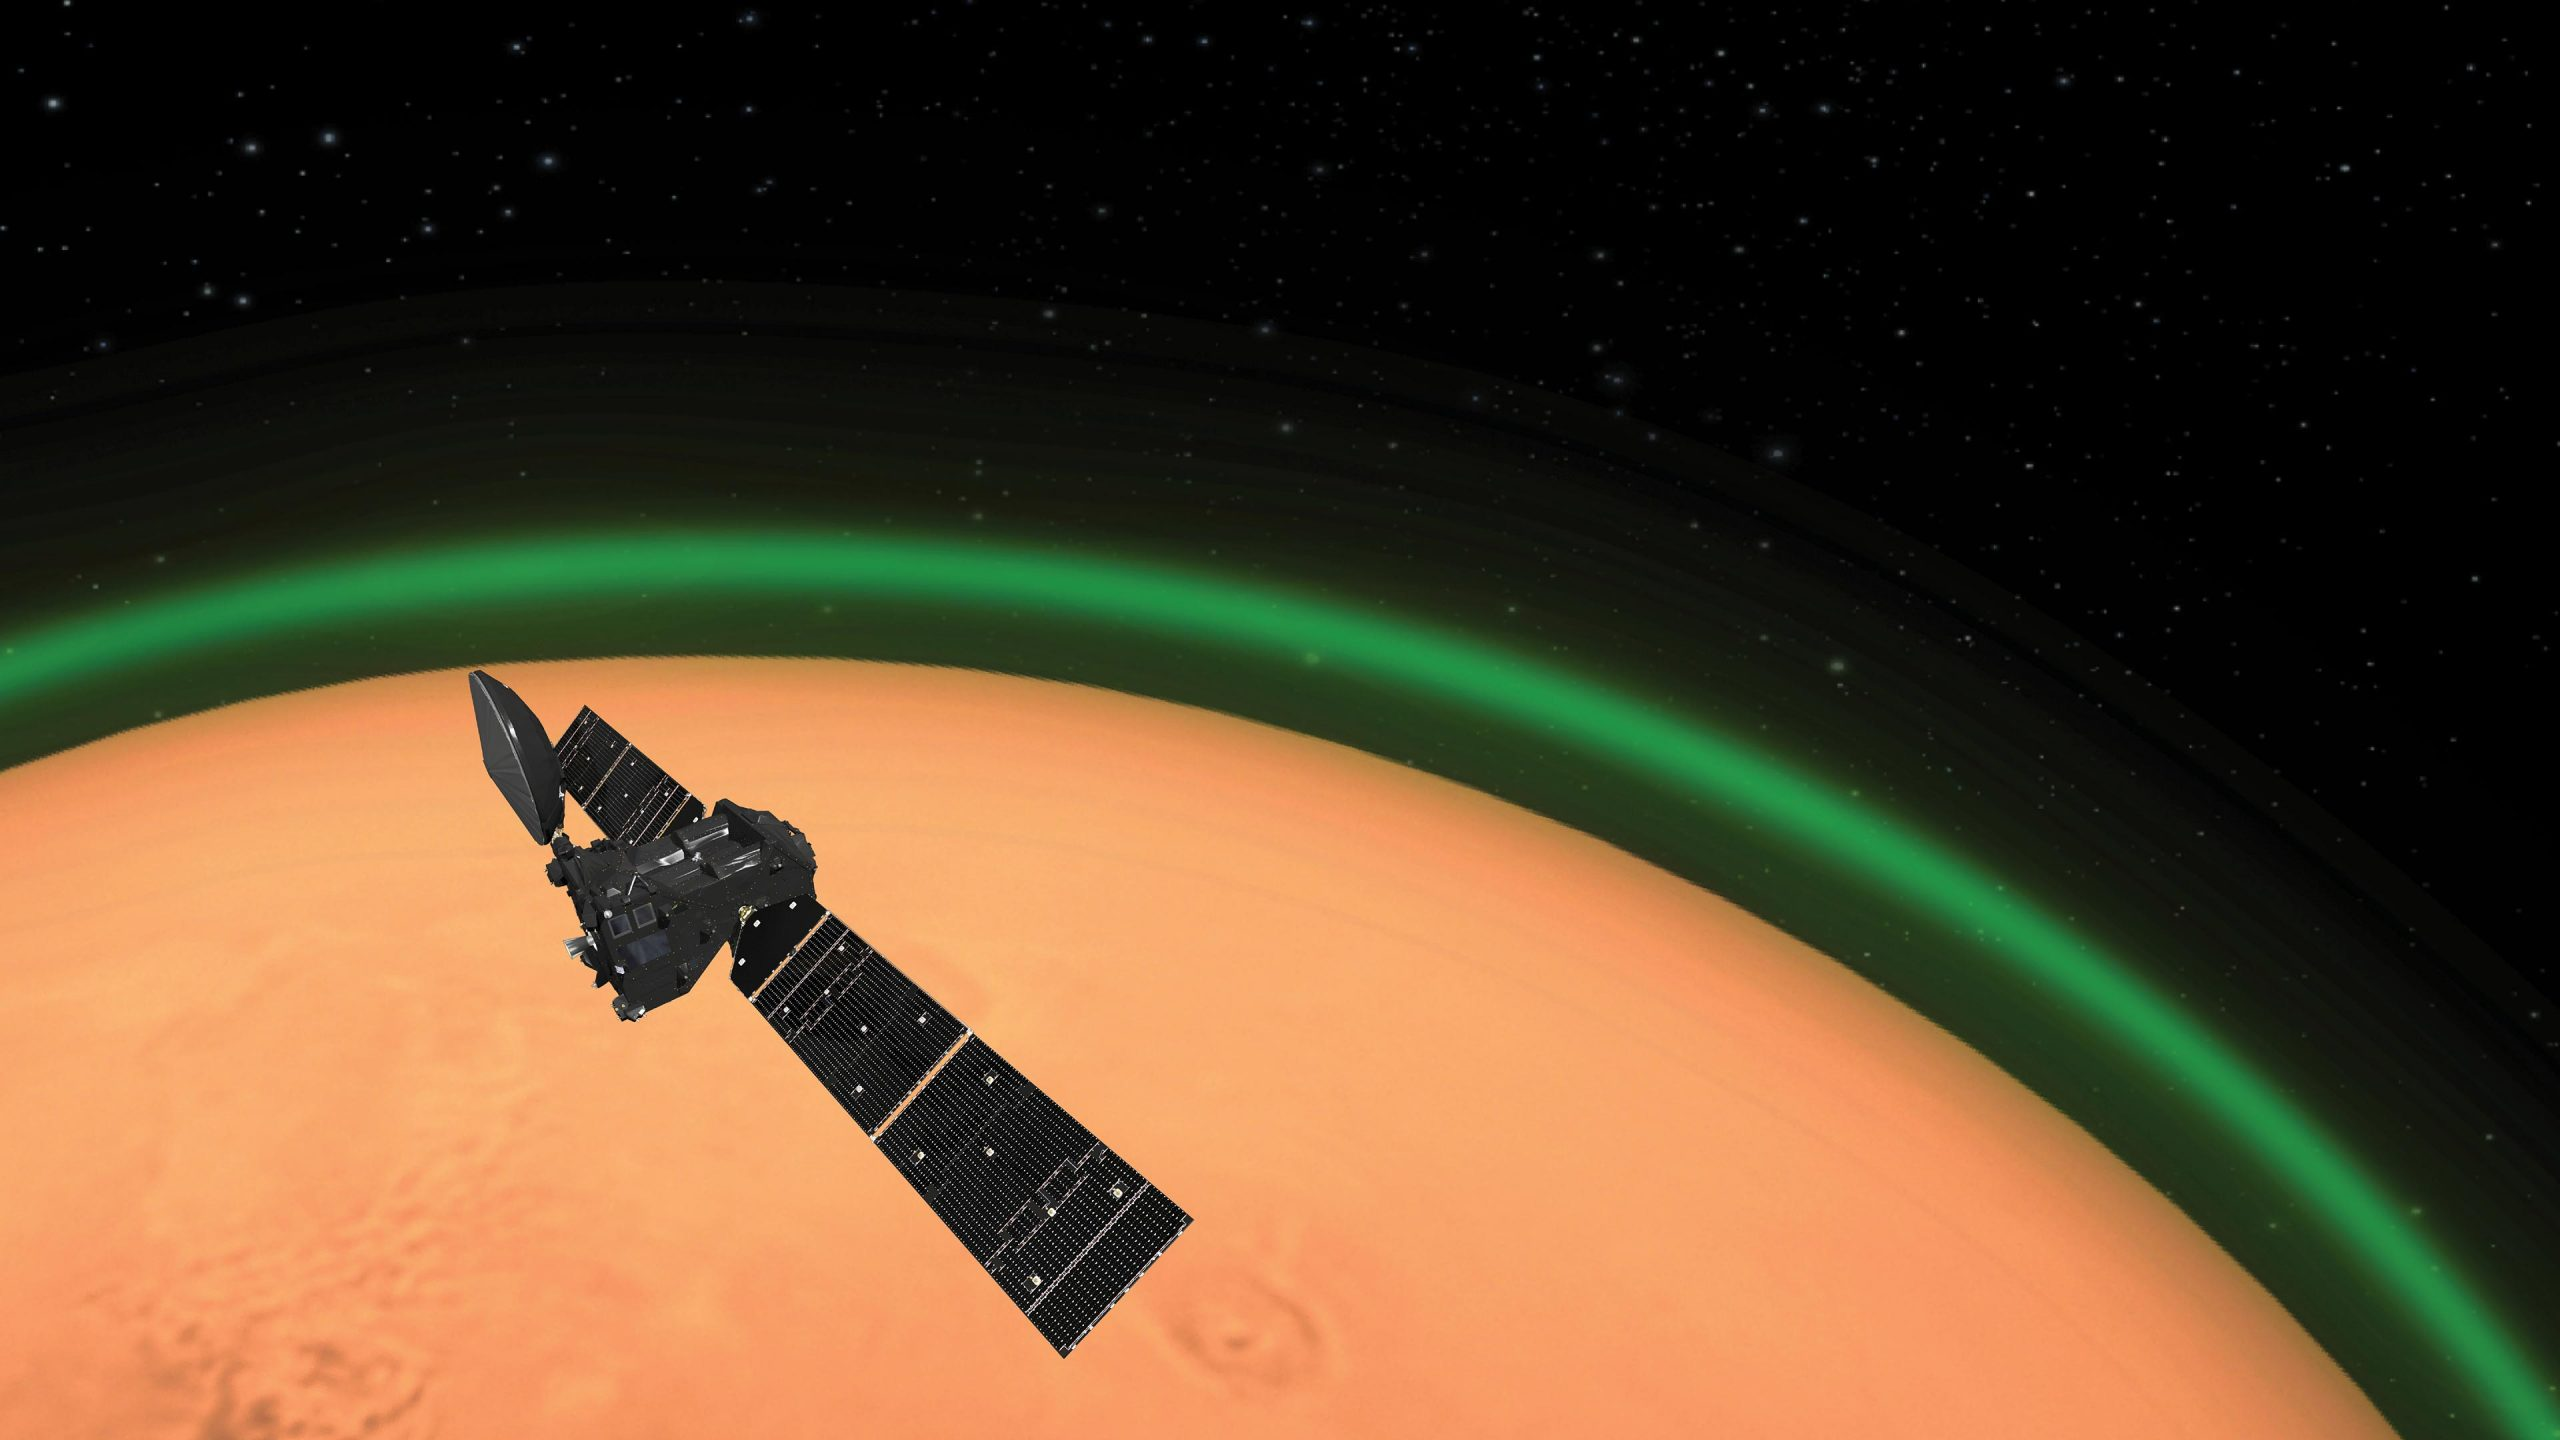 ExoMars Trace Gas Orbiter Spots Daylight Green Oxygen at Mars scaled